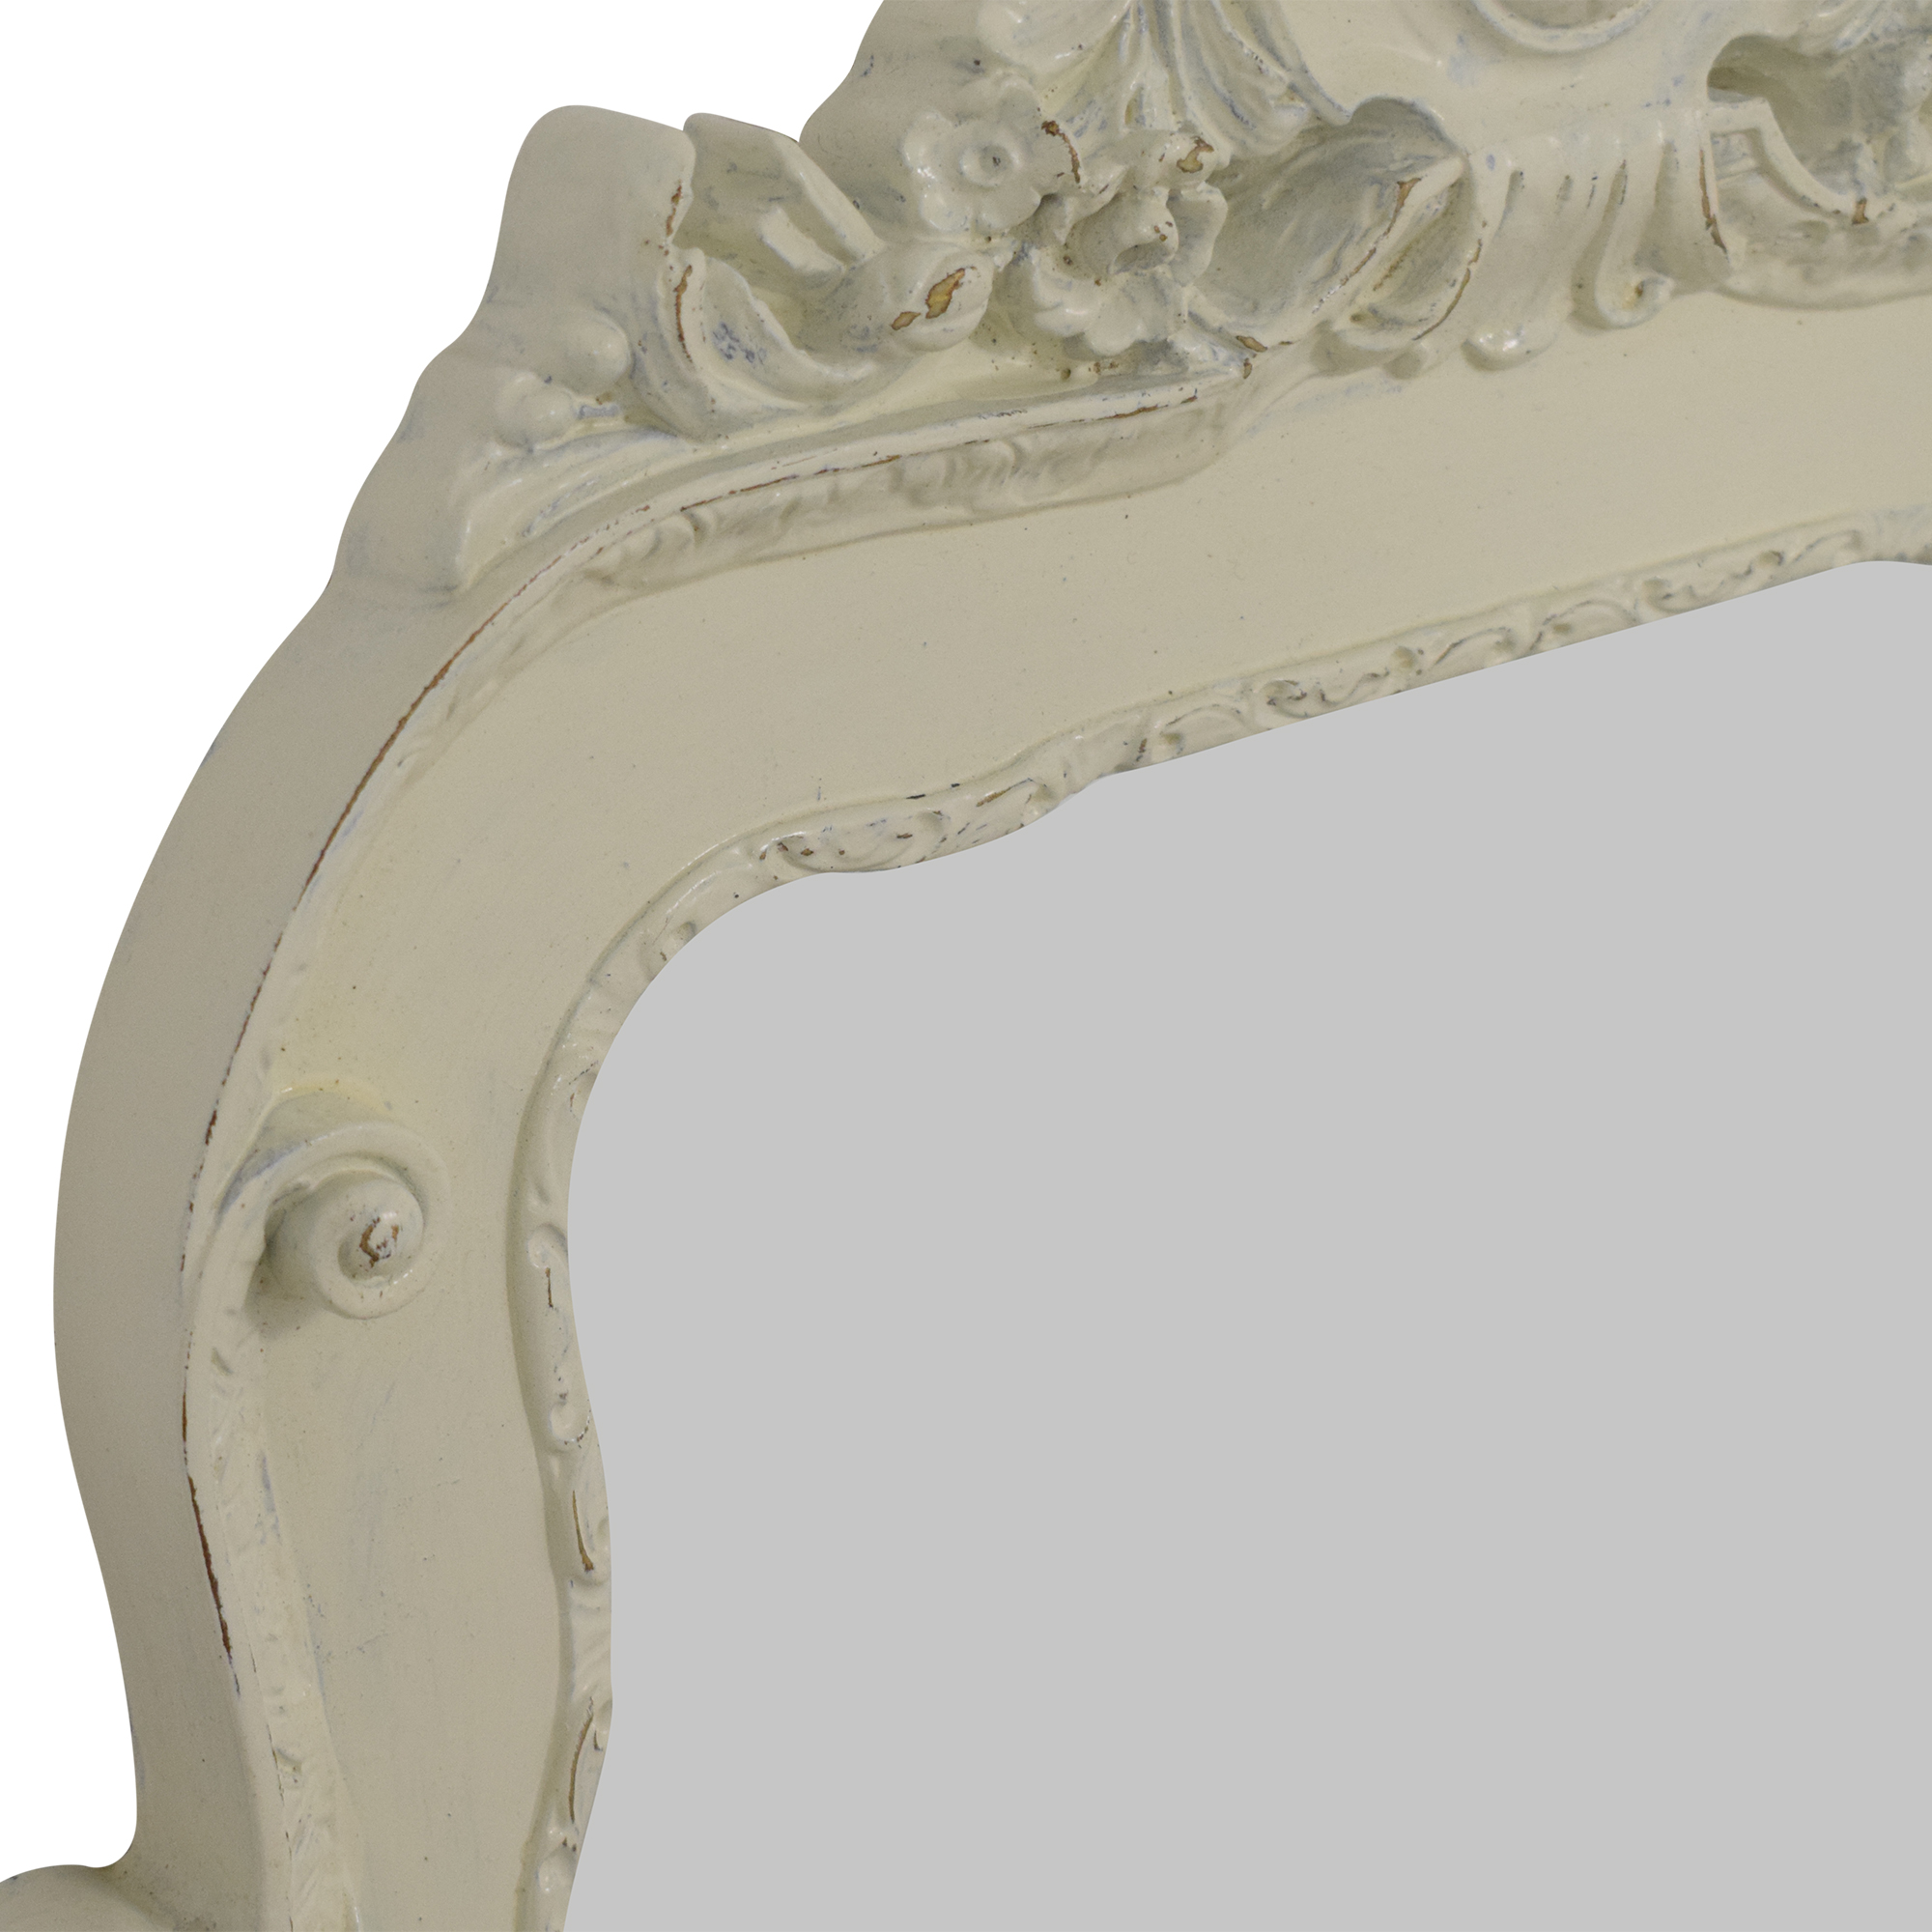 American Mirror Company American Mirror Company Wall Mirror second hand